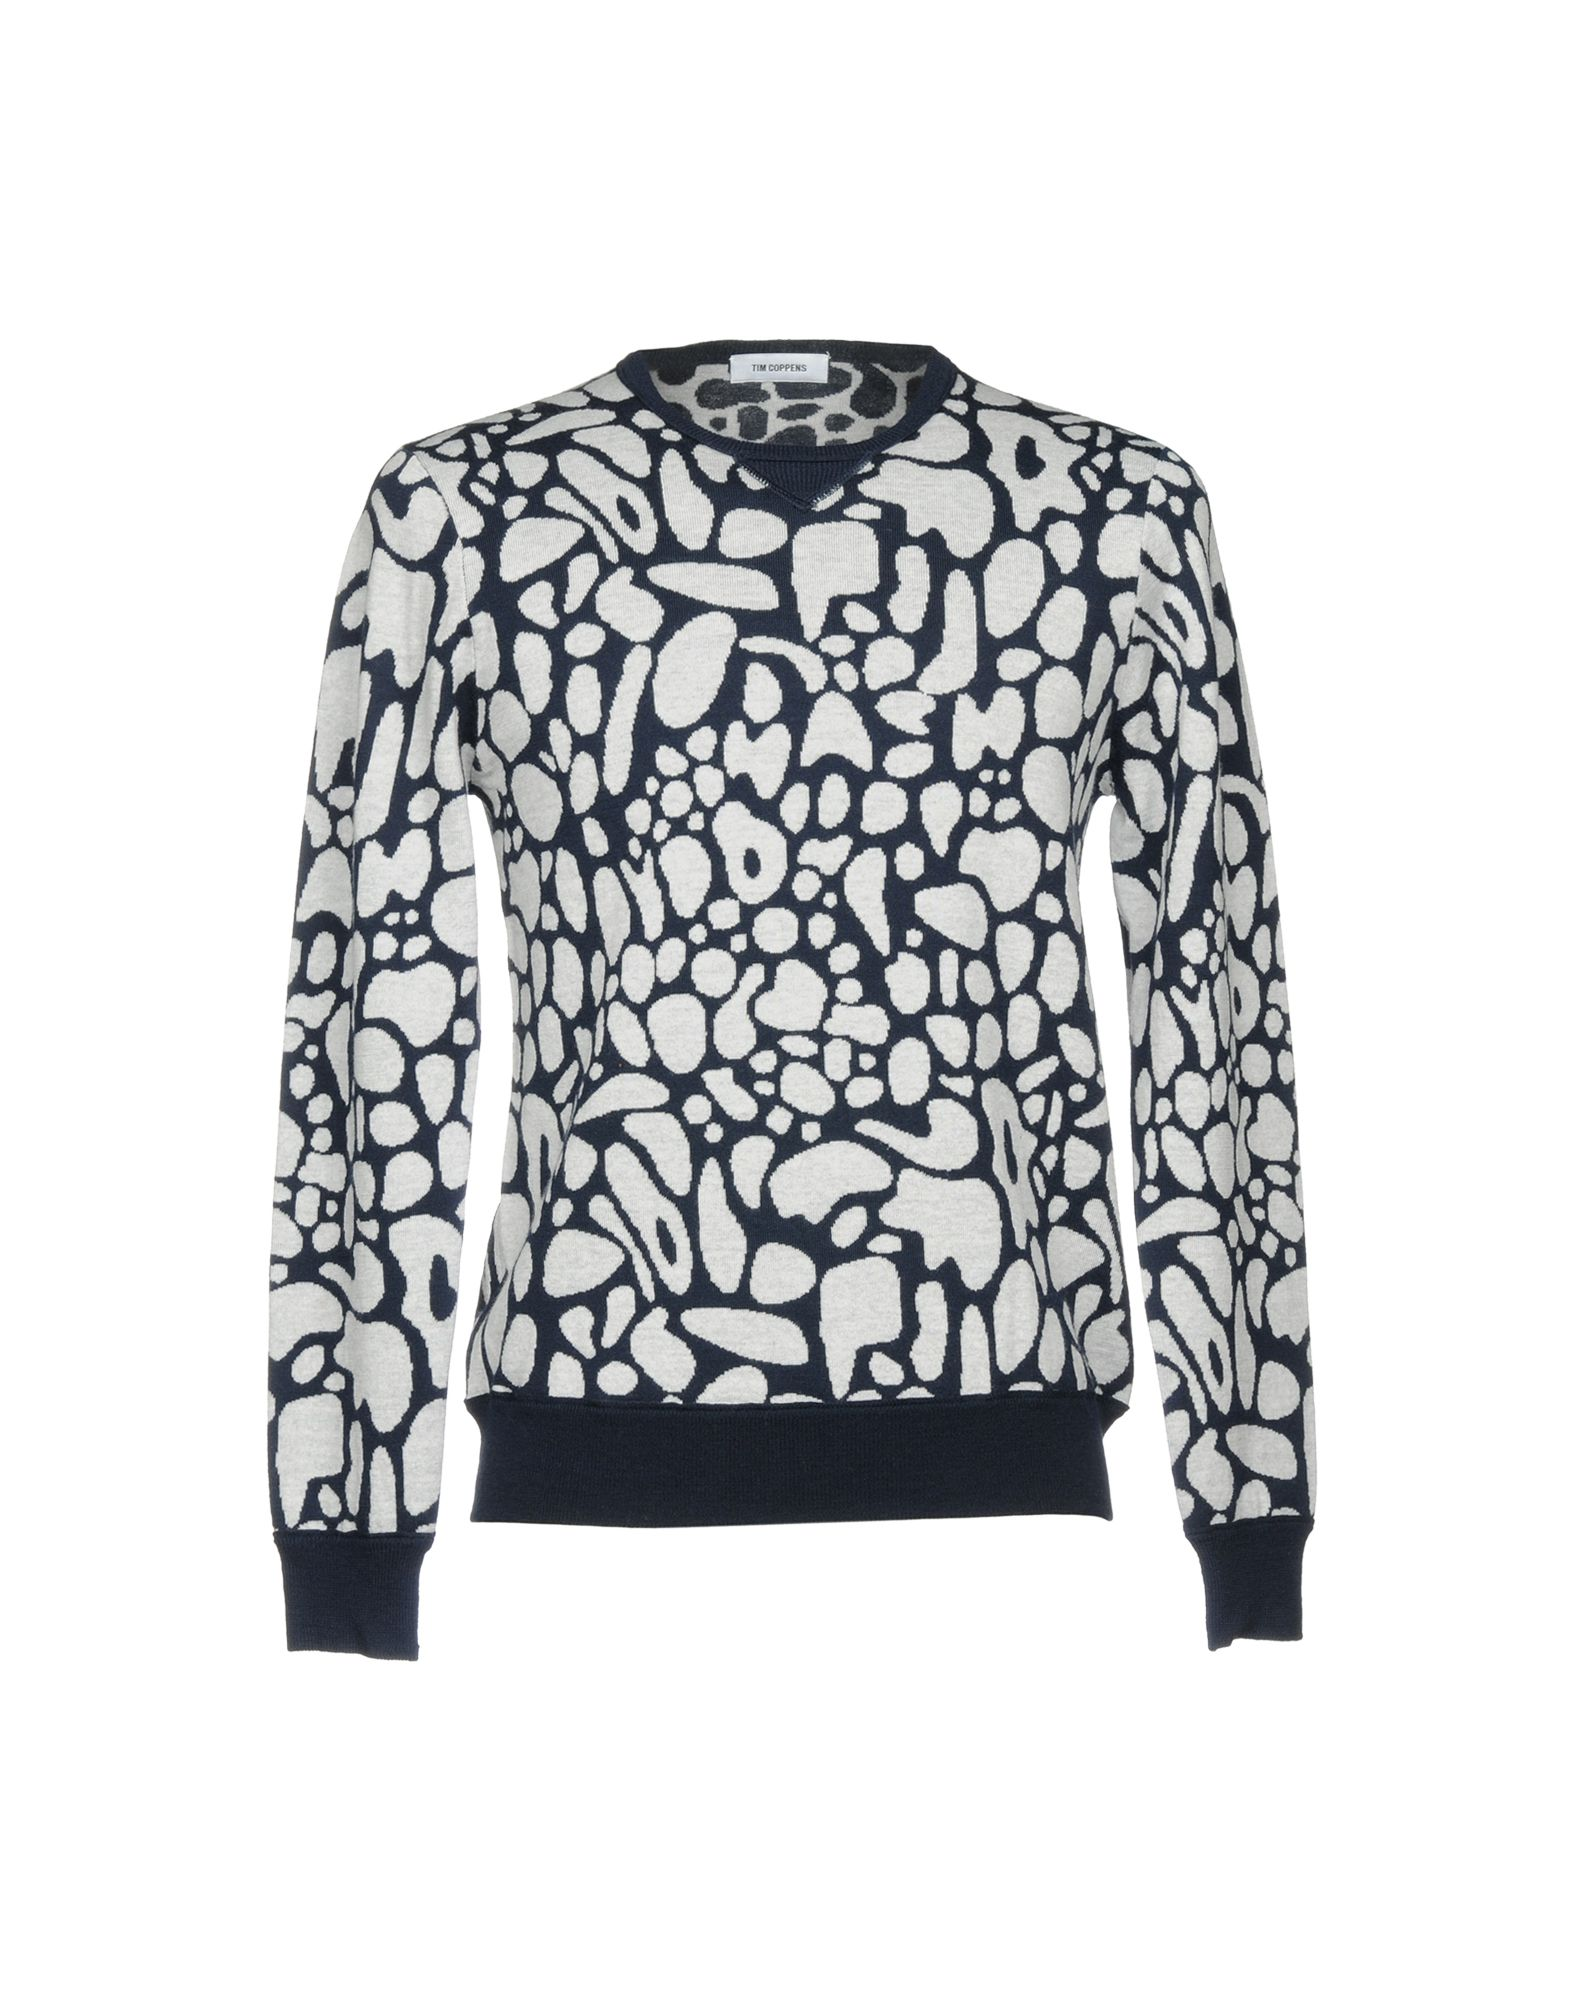 TIM COPPENS Sweater in Dark Blue